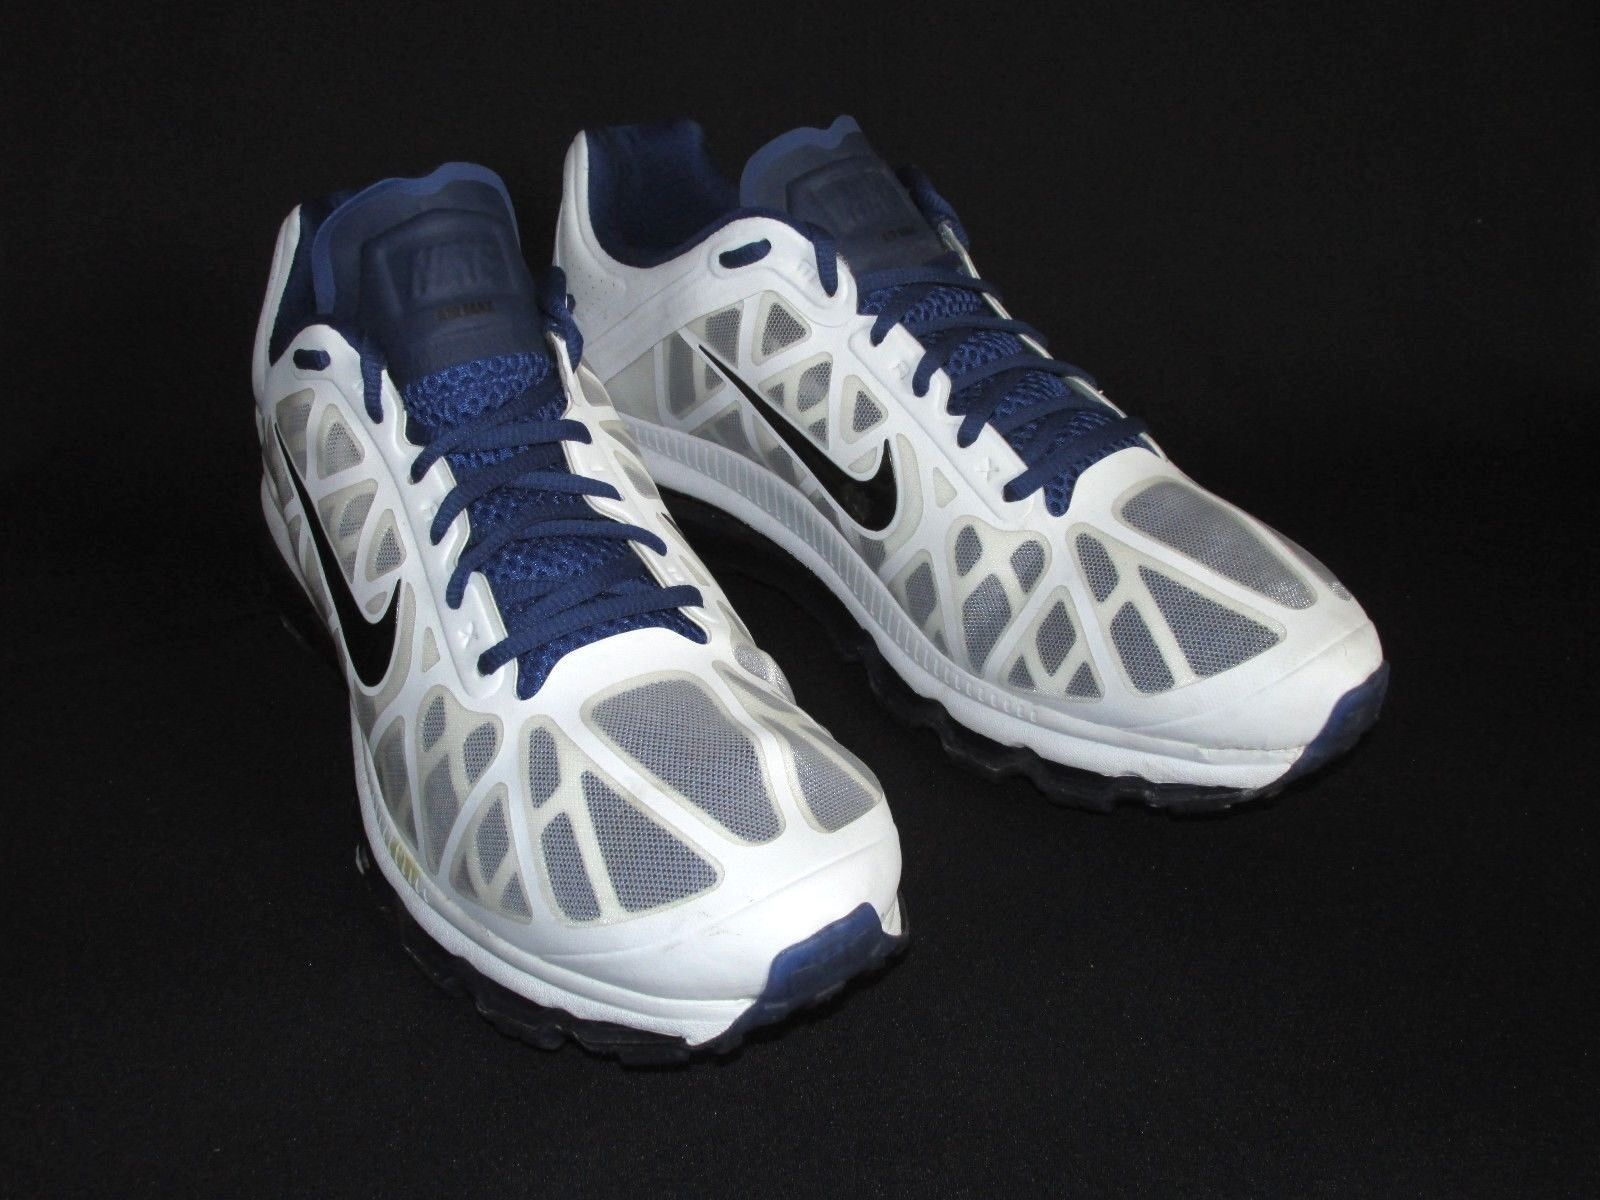 Nike Air  Max  2018 White Navy Blue Mens Running Shoes 429889-104 US 15  The latest discount shoes for men and women